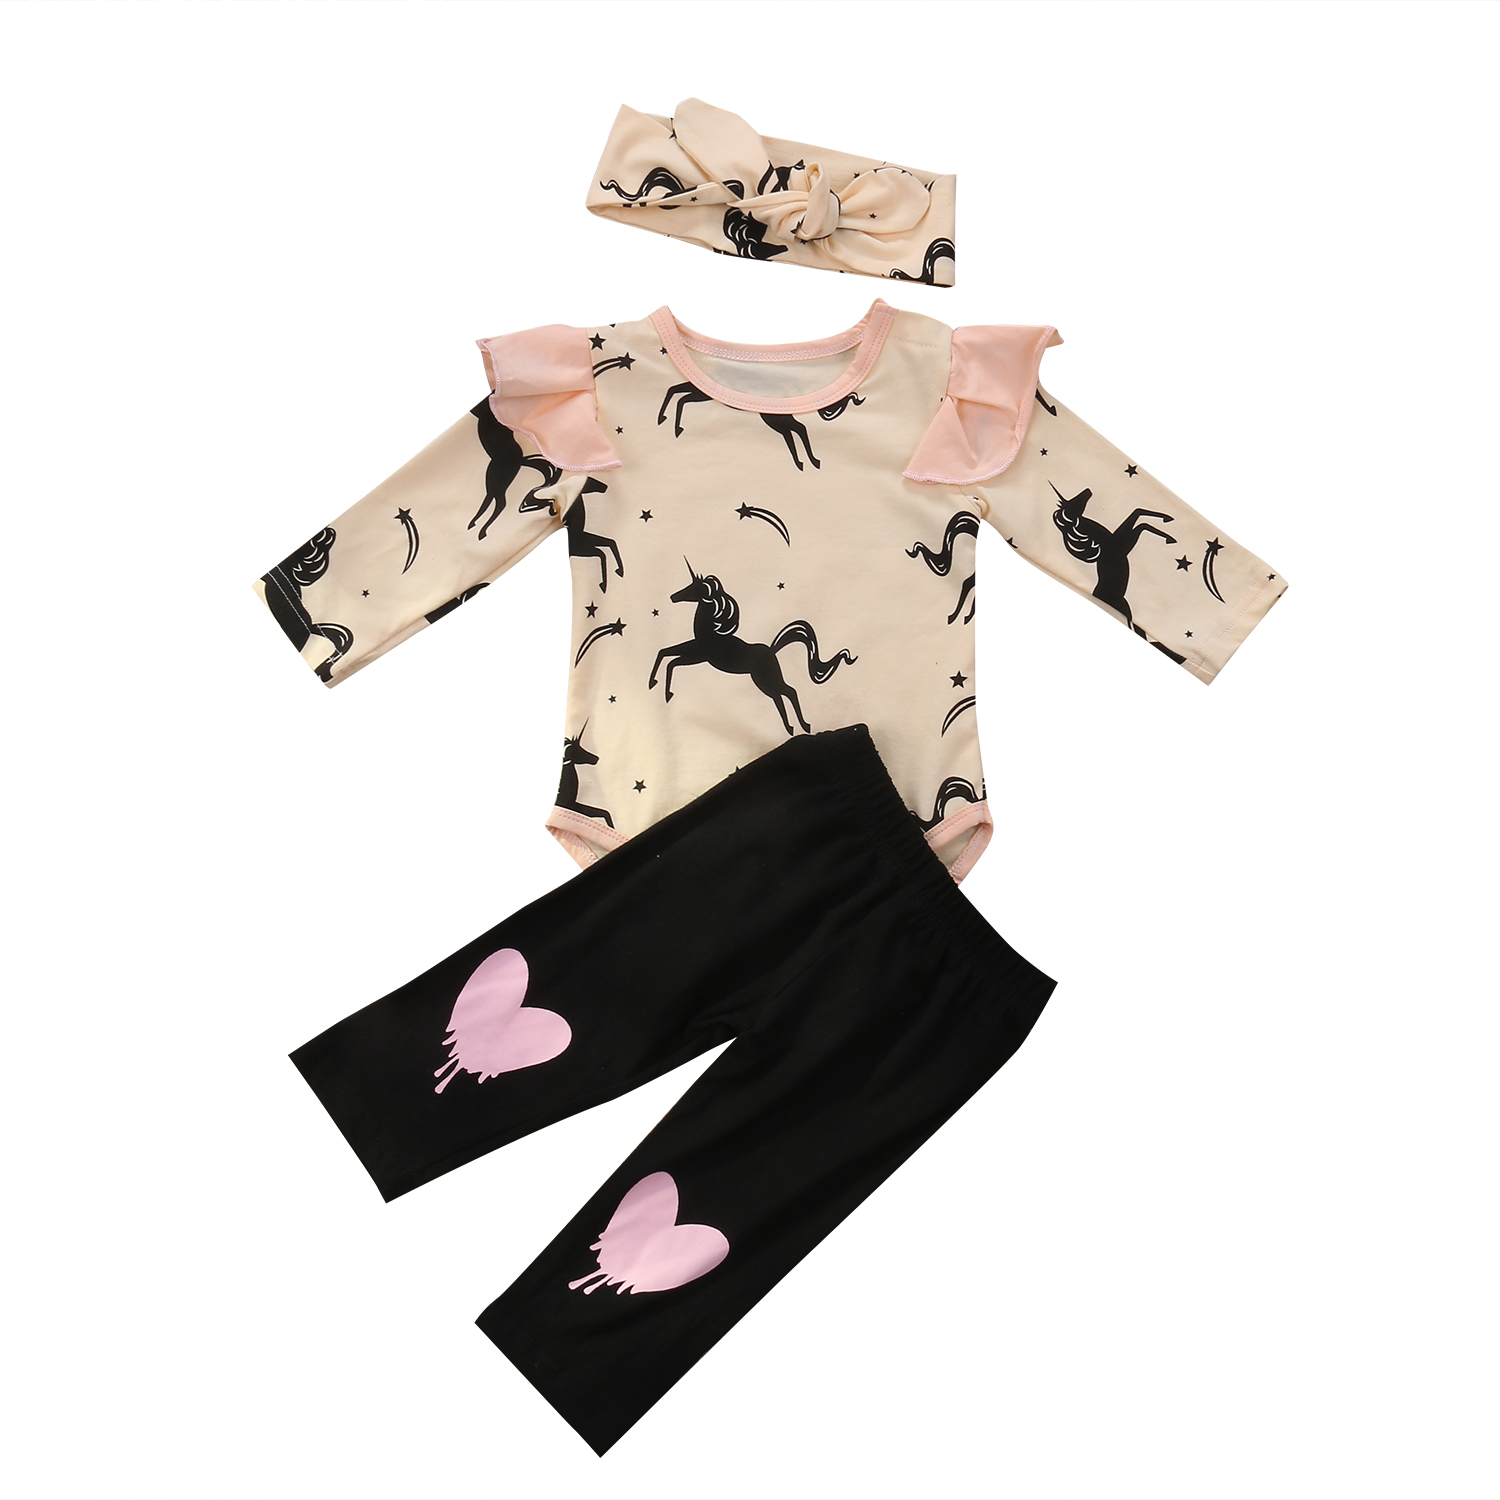 2017 New Brand Newborn Toddler Infant Baby Girl Kids Bodysuit Long SleeveT-shirt Long Pants Headband 3Pcs Set Outfit Clothes 4pcs set newborn baby clothes infant bebes short sleeve mini mama bodysuit romper headband gold heart striped leg warmer outfit